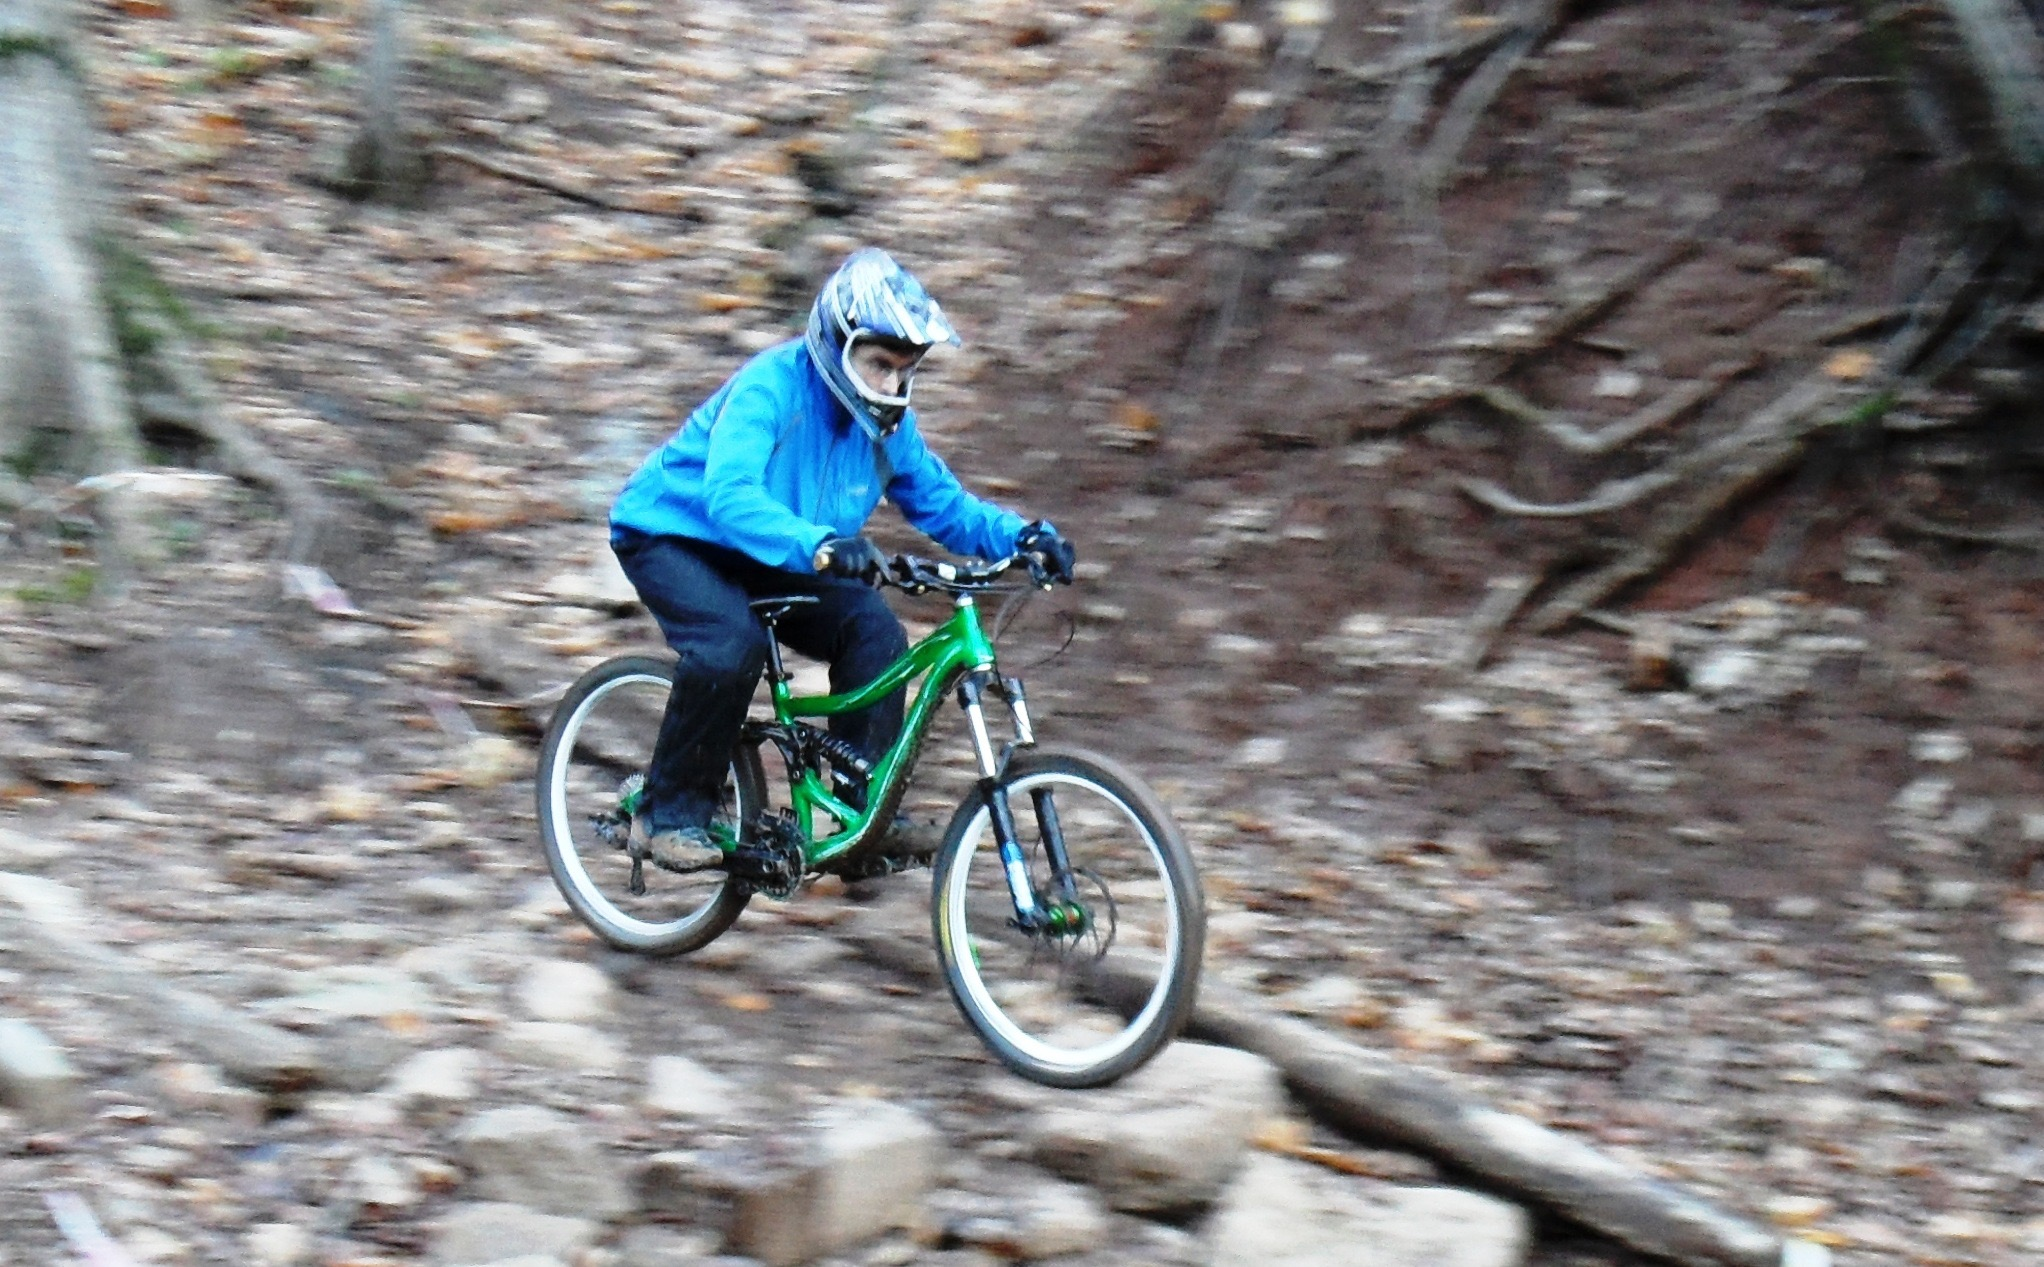 Gritsenko navigates rocks in Beech Mountain, NC